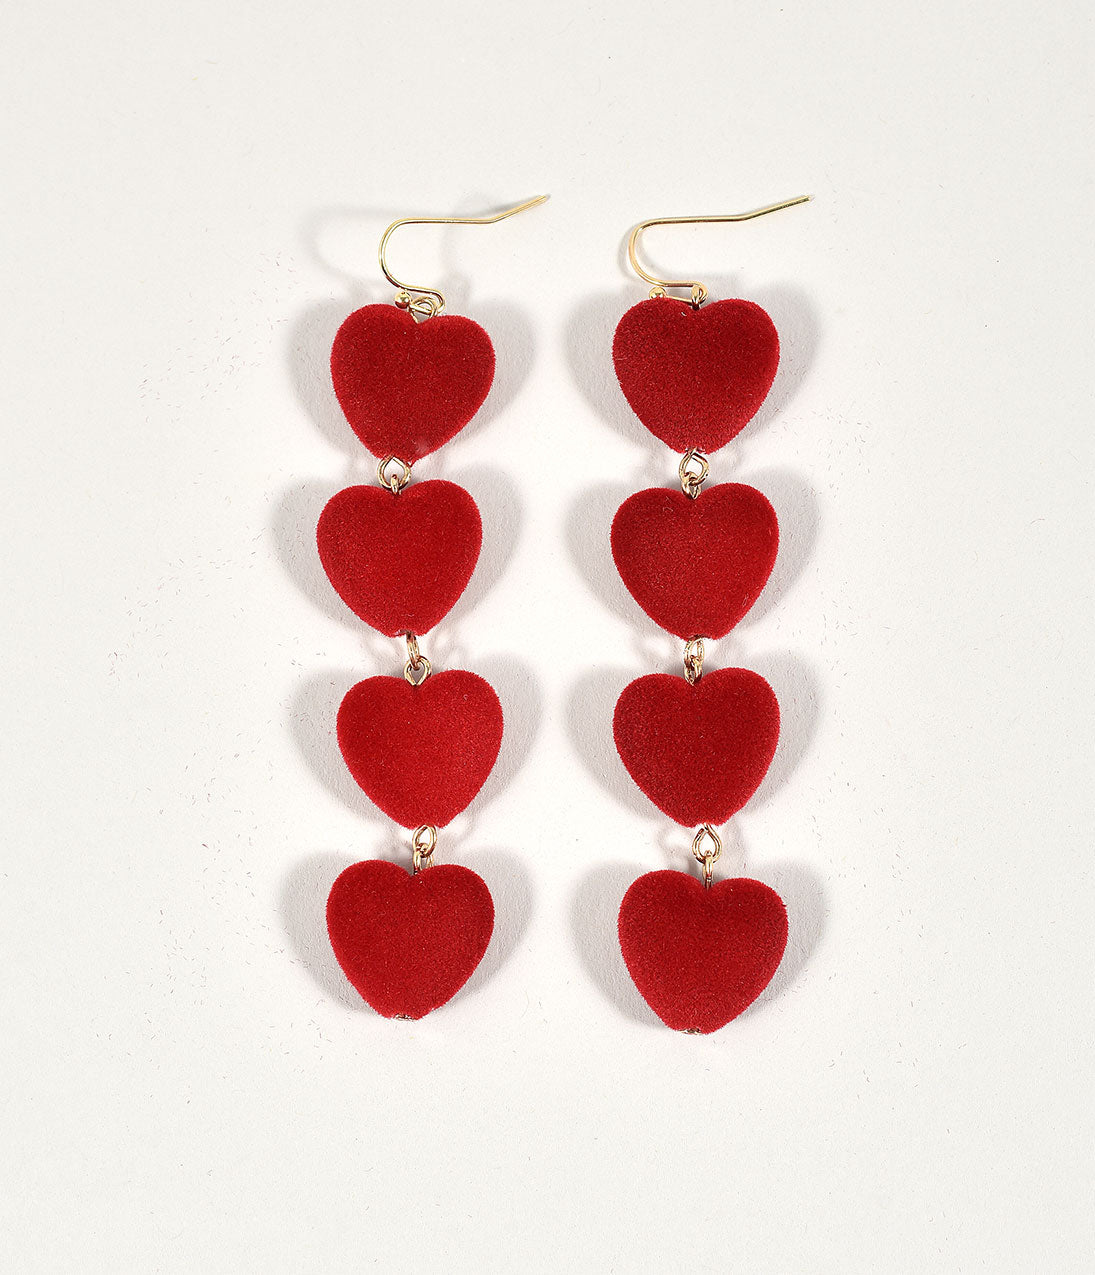 Vintage Style Jewelry, Retro Jewelry Red Velvet Stacked Hearts Drop Earrings $16.00 AT vintagedancer.com